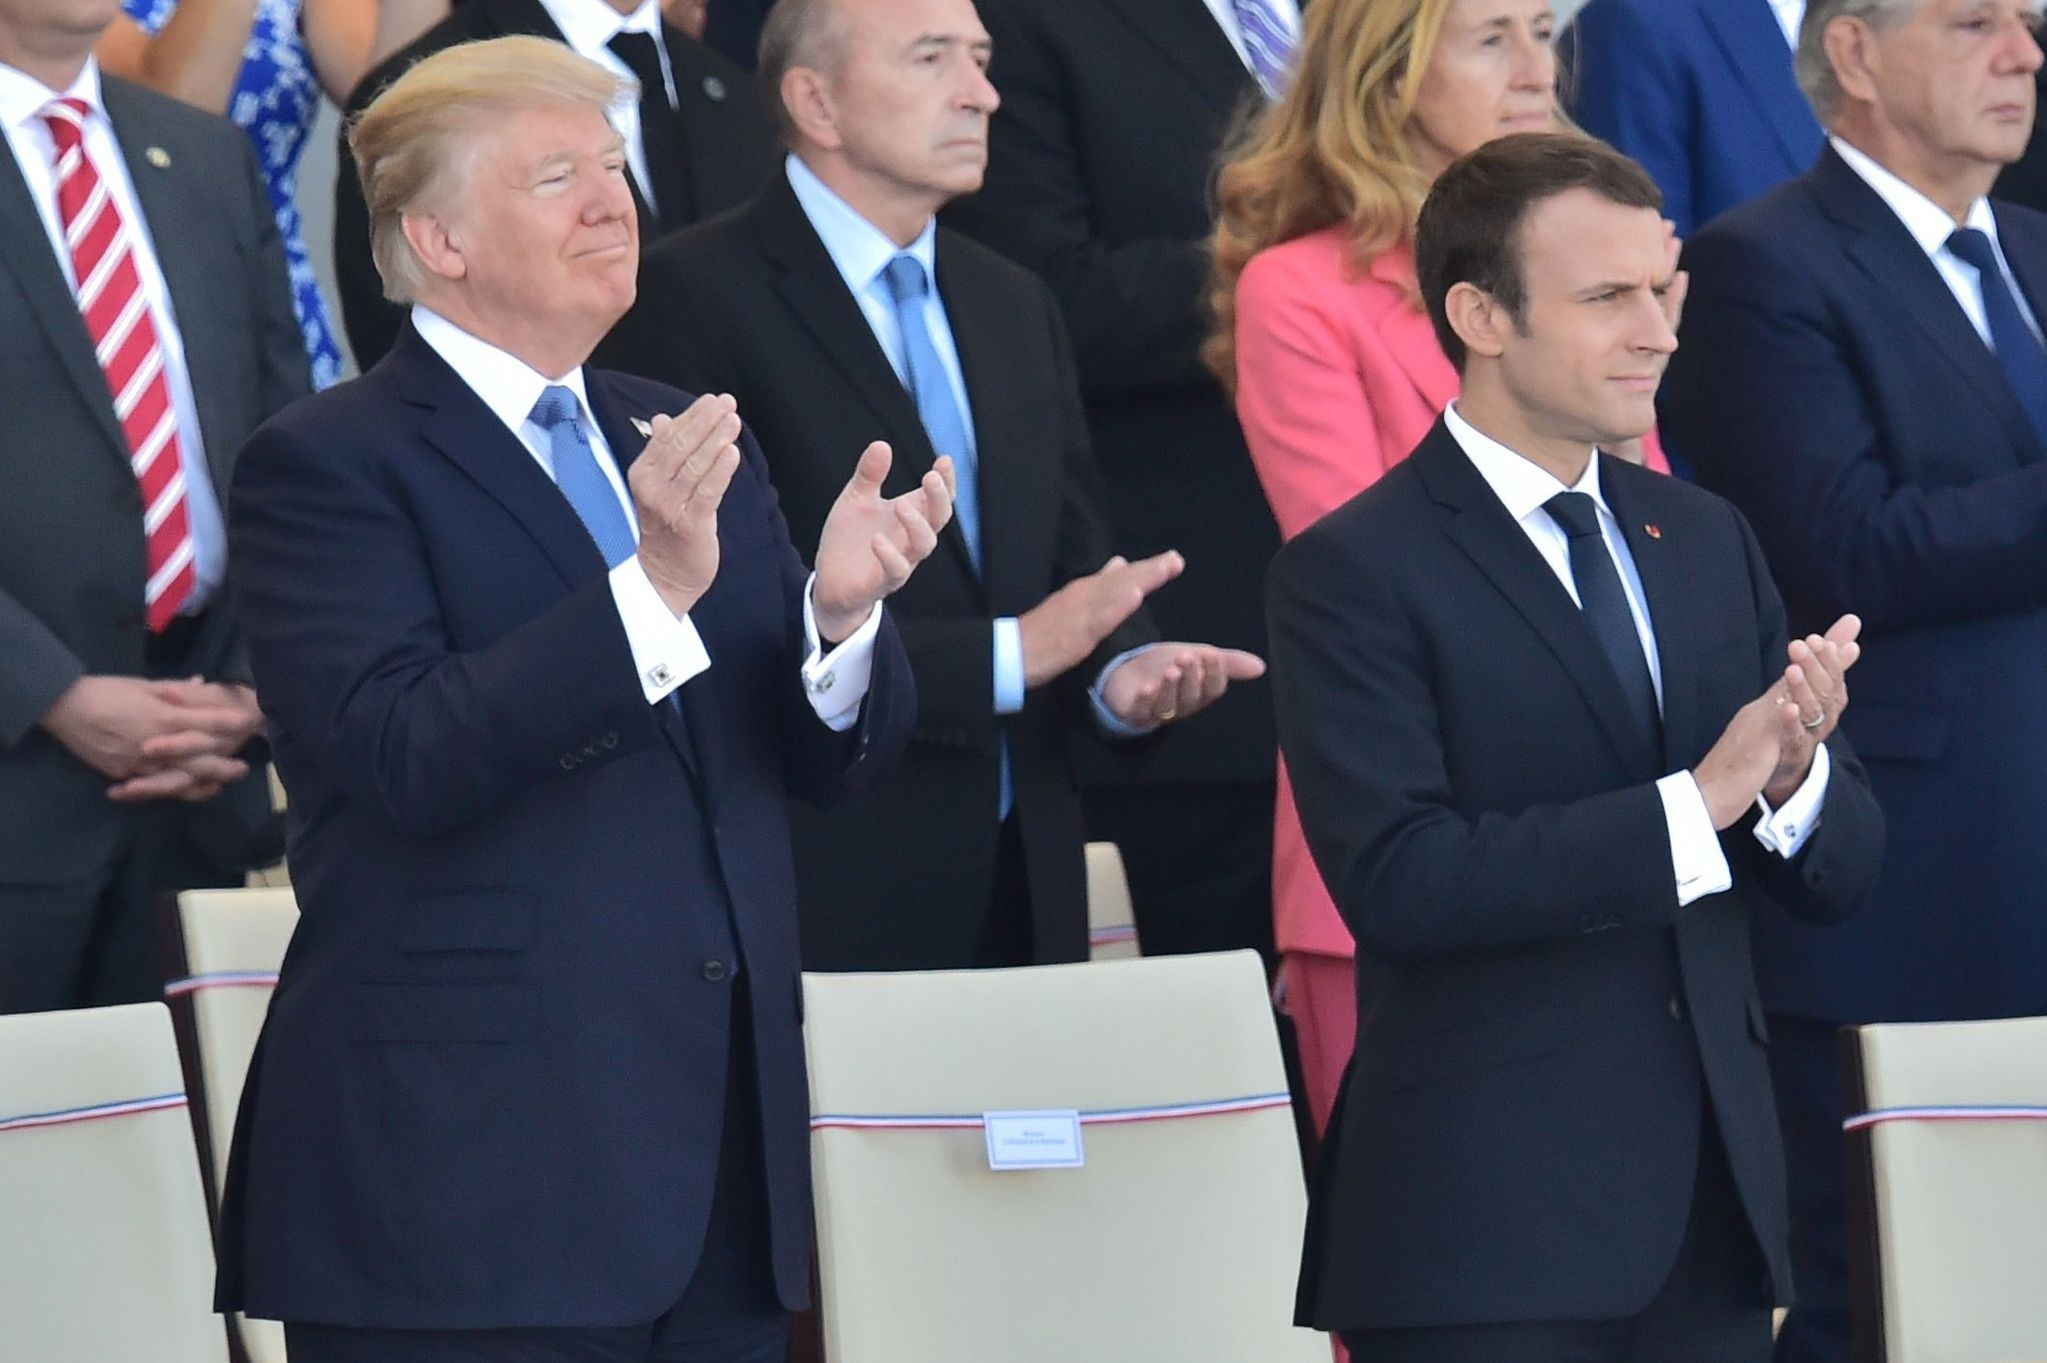 U.S. President Donald Trump (L) and his French counterpart Emmanuel Macron applaud as they watch the annual Bastille Day military parade on the Champs-Elysees avenue in Paris on July 14, 2017. (AFP Photo)